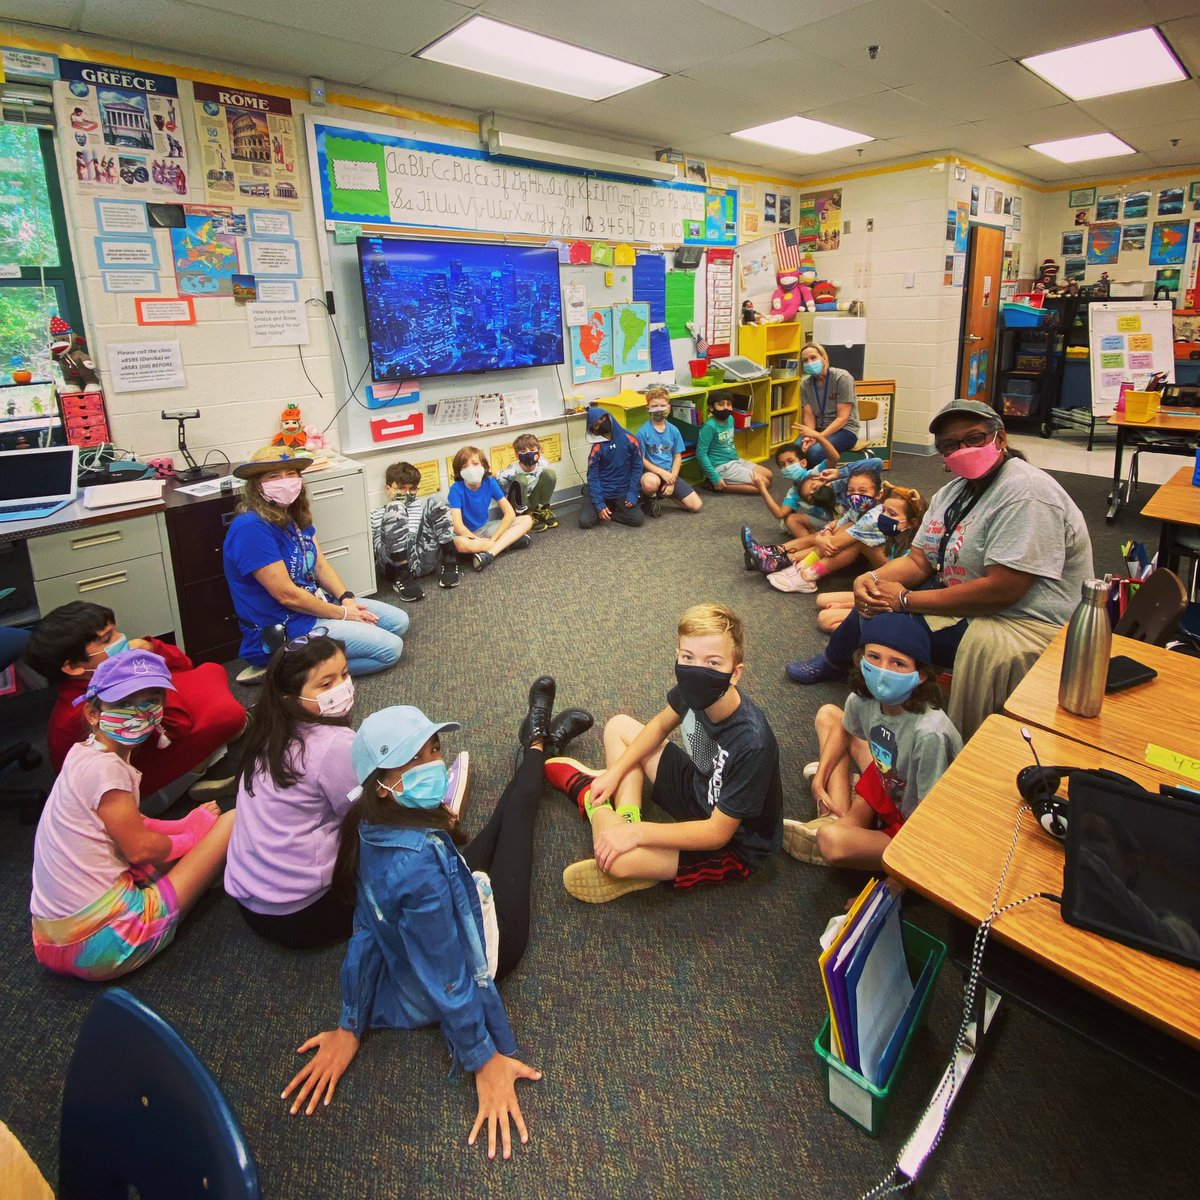 Hat day morning meeting last Friday in Mrs. Heidig's 3rd grade class 🧢👒🎩 <a target='_blank' href='https://t.co/R1MvPsQRdZ'>https://t.co/R1MvPsQRdZ</a>